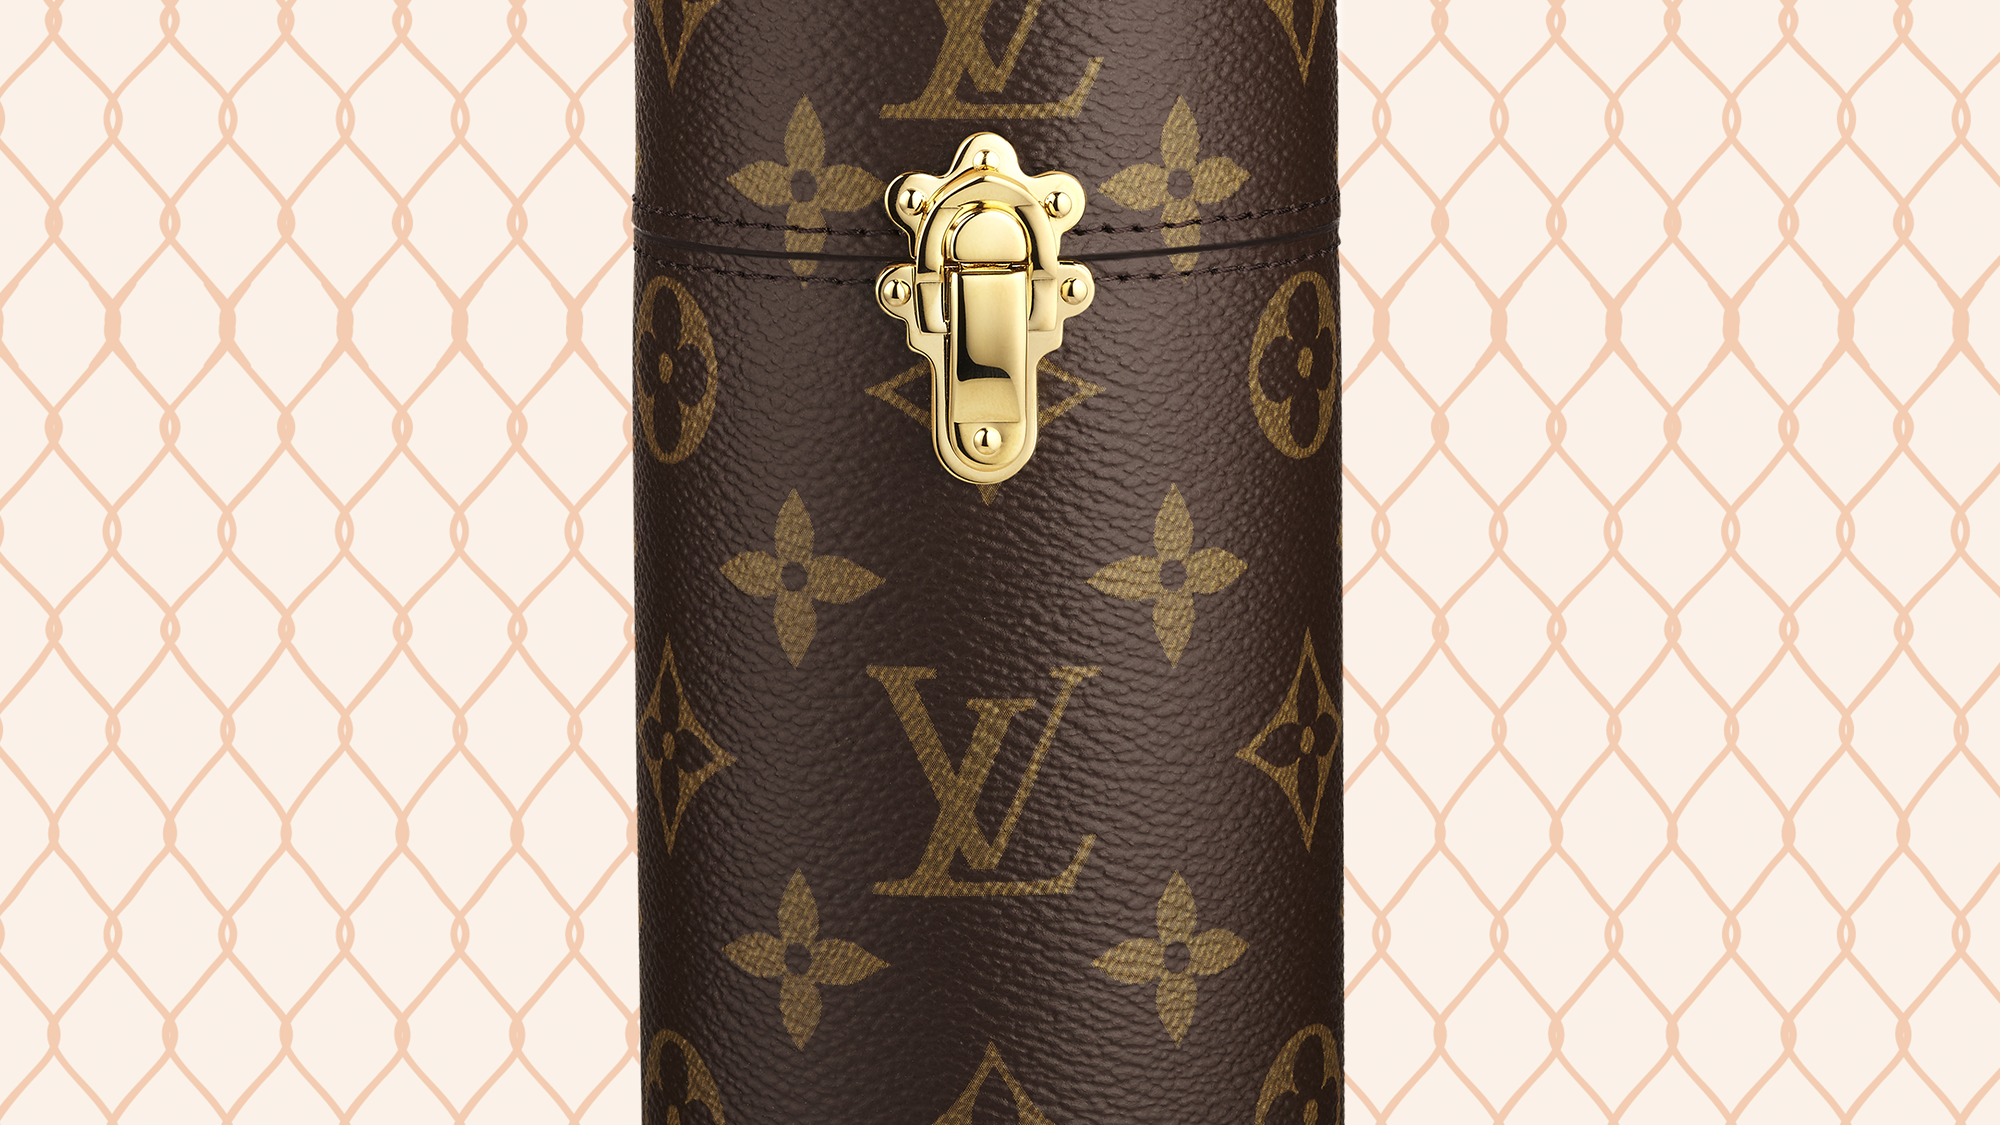 387869f5e6 Louis Vuitton Has New Travel Cases For Your...Perfume?